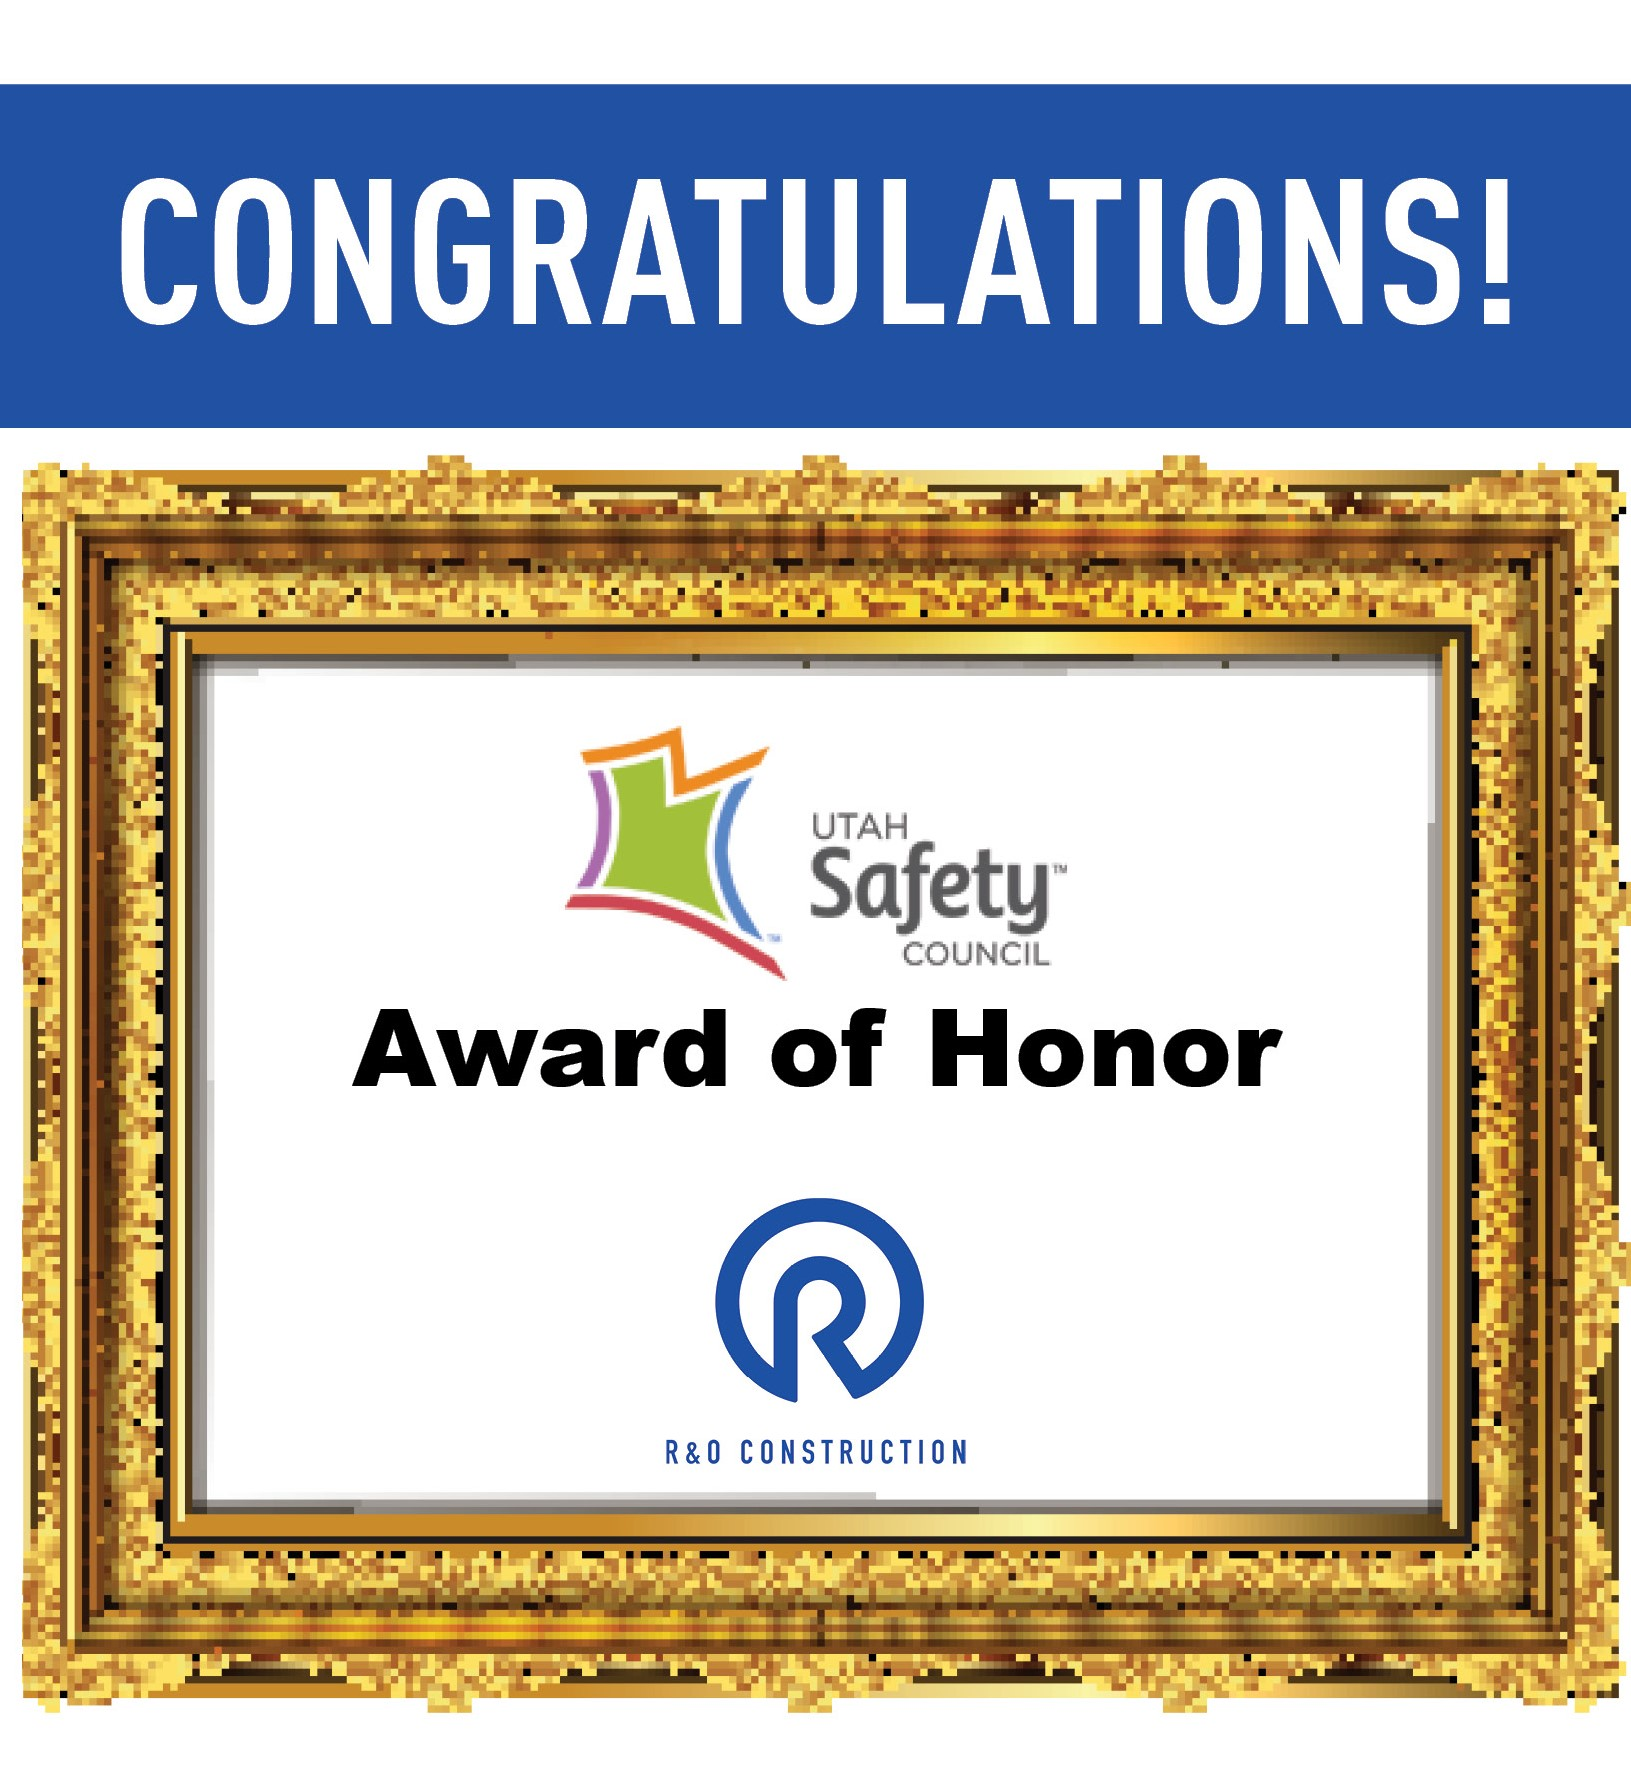 R&O Receives Highest Recognition from the Utah Safety Council